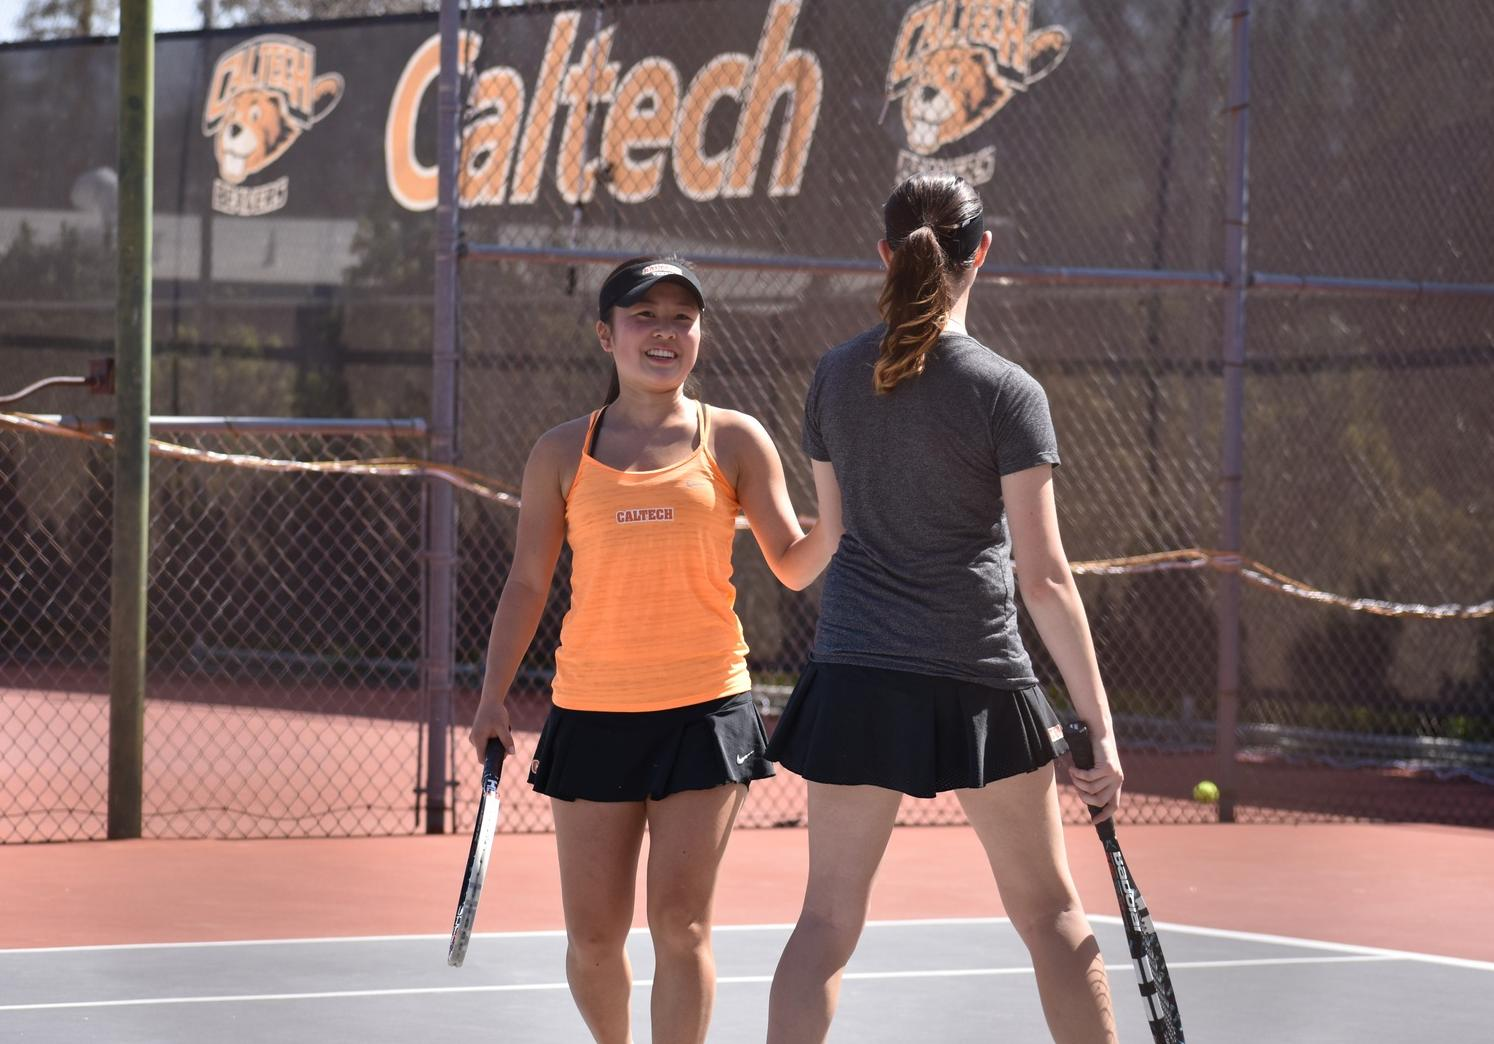 Women's Tennis Earns Program's Highest Regional Ranking